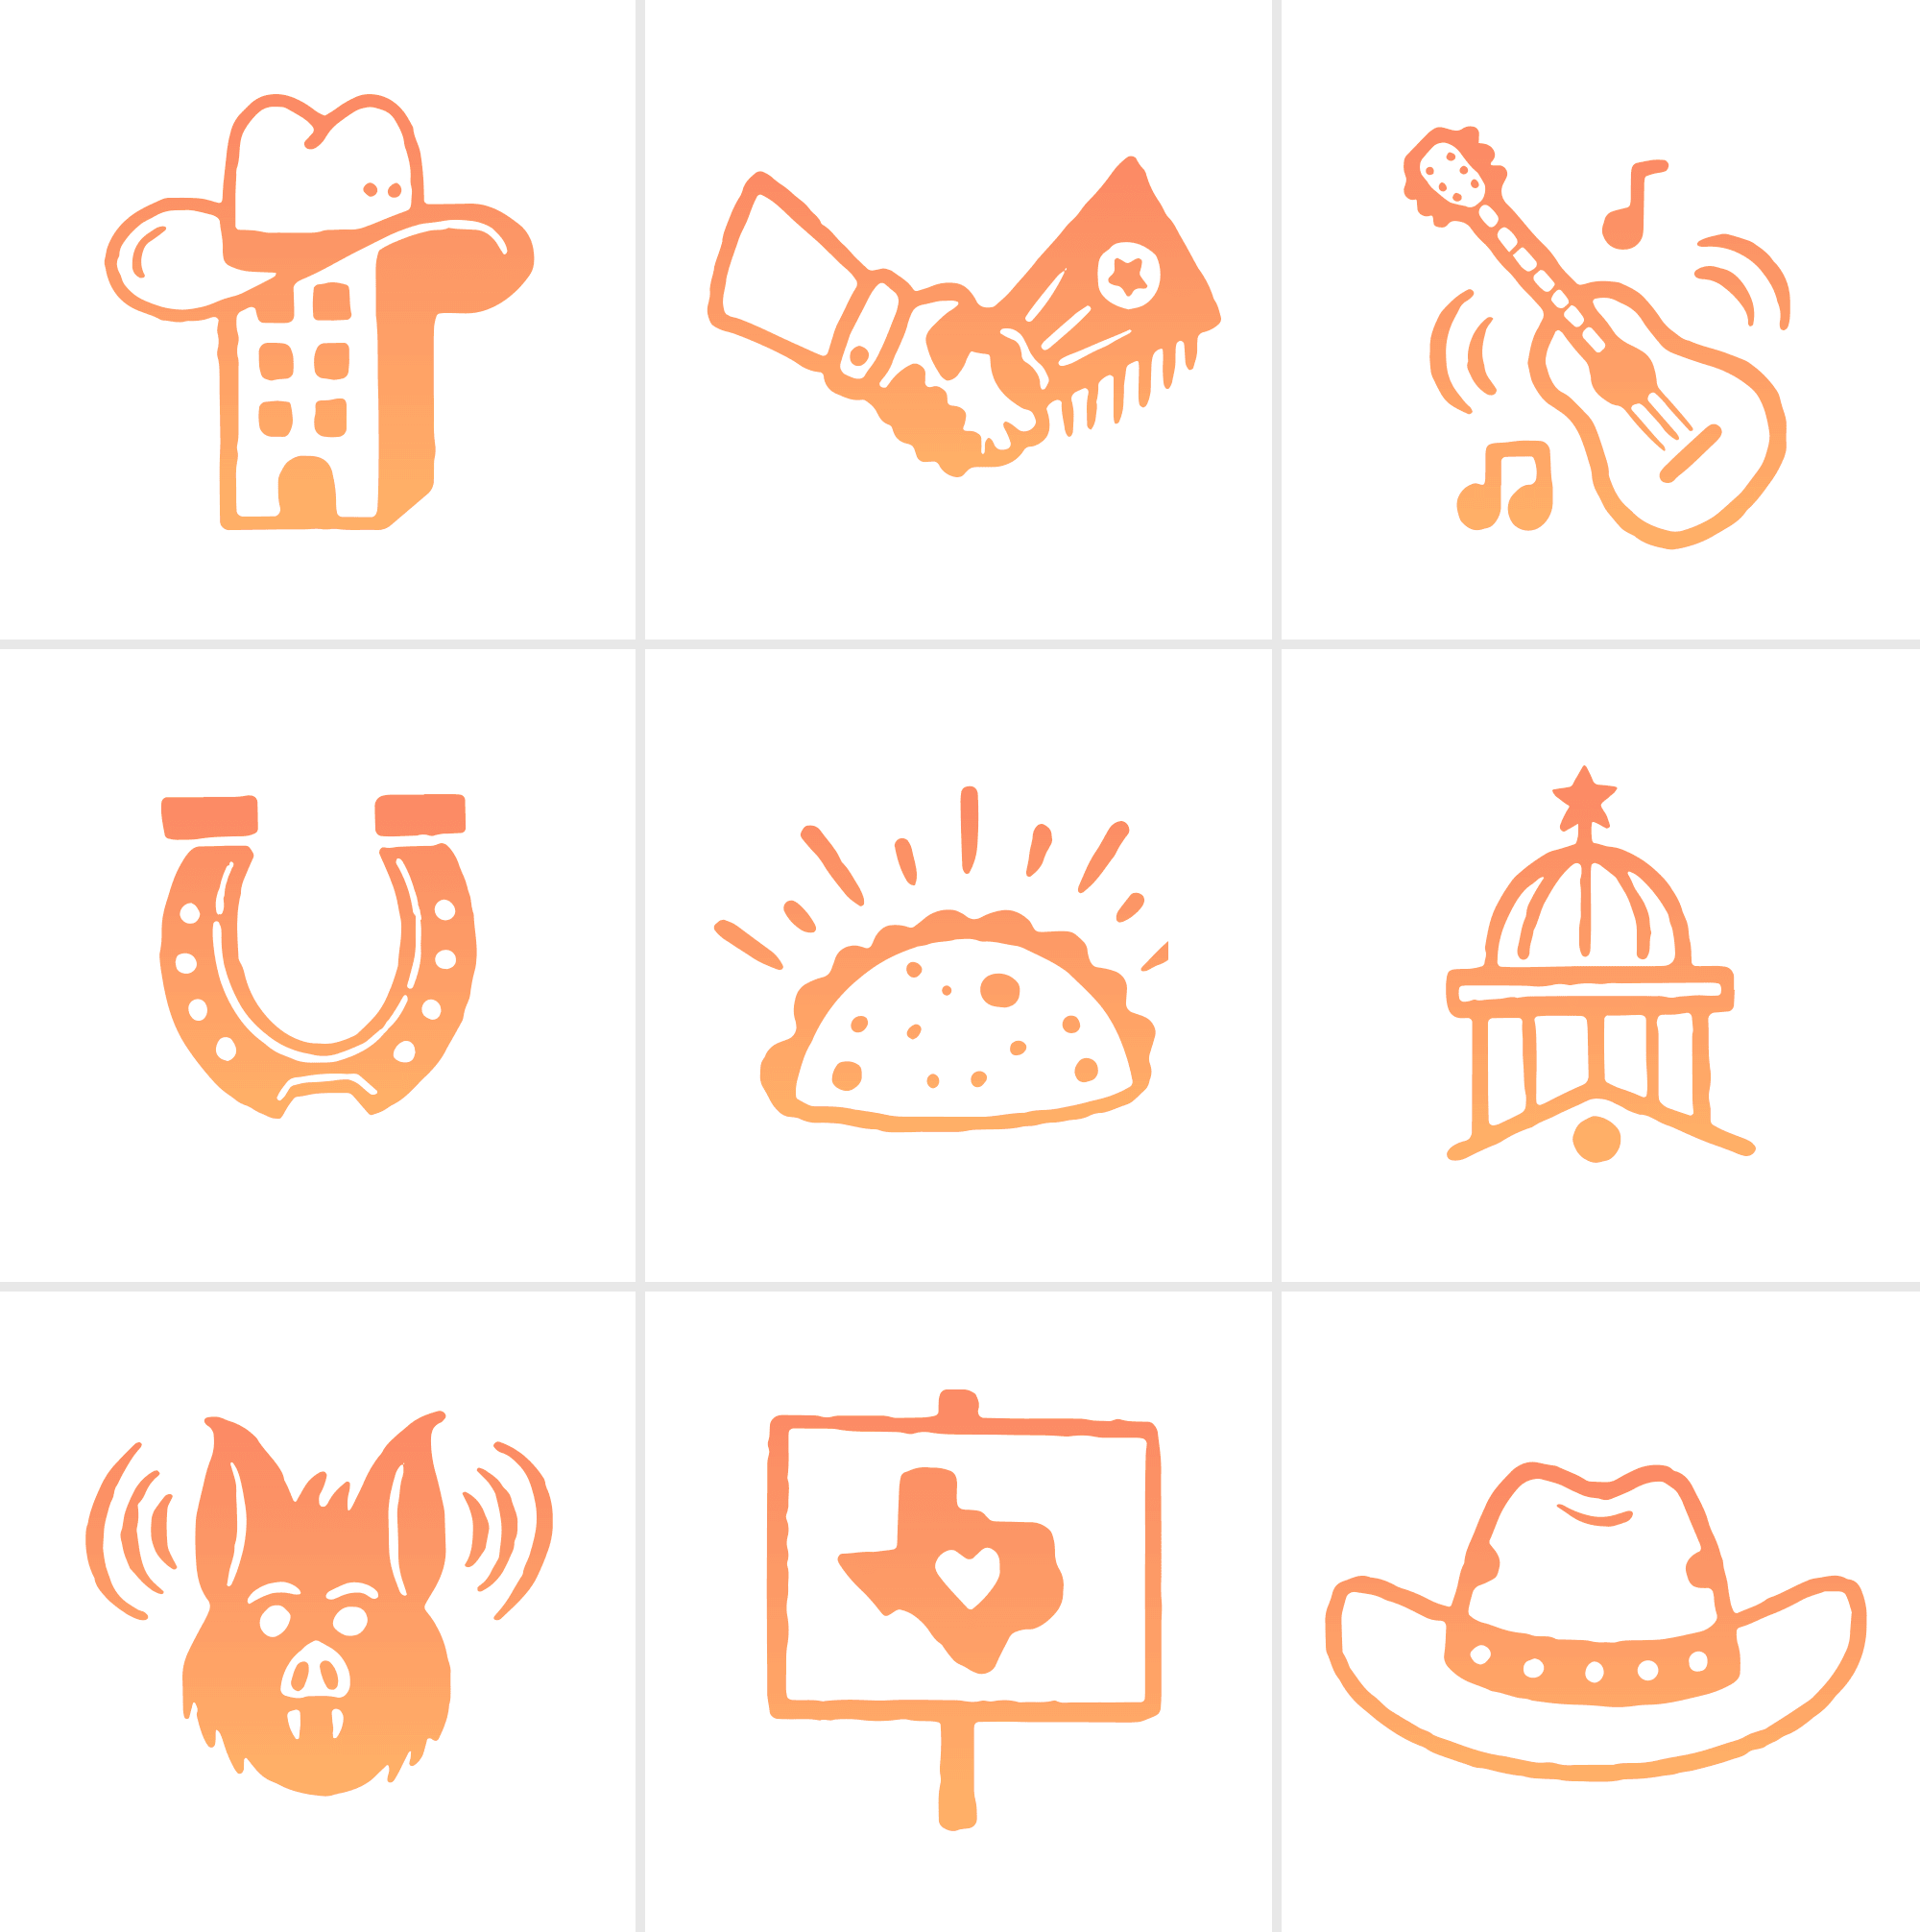 Austin Chamber of Commerce icon set by Bryan Butler